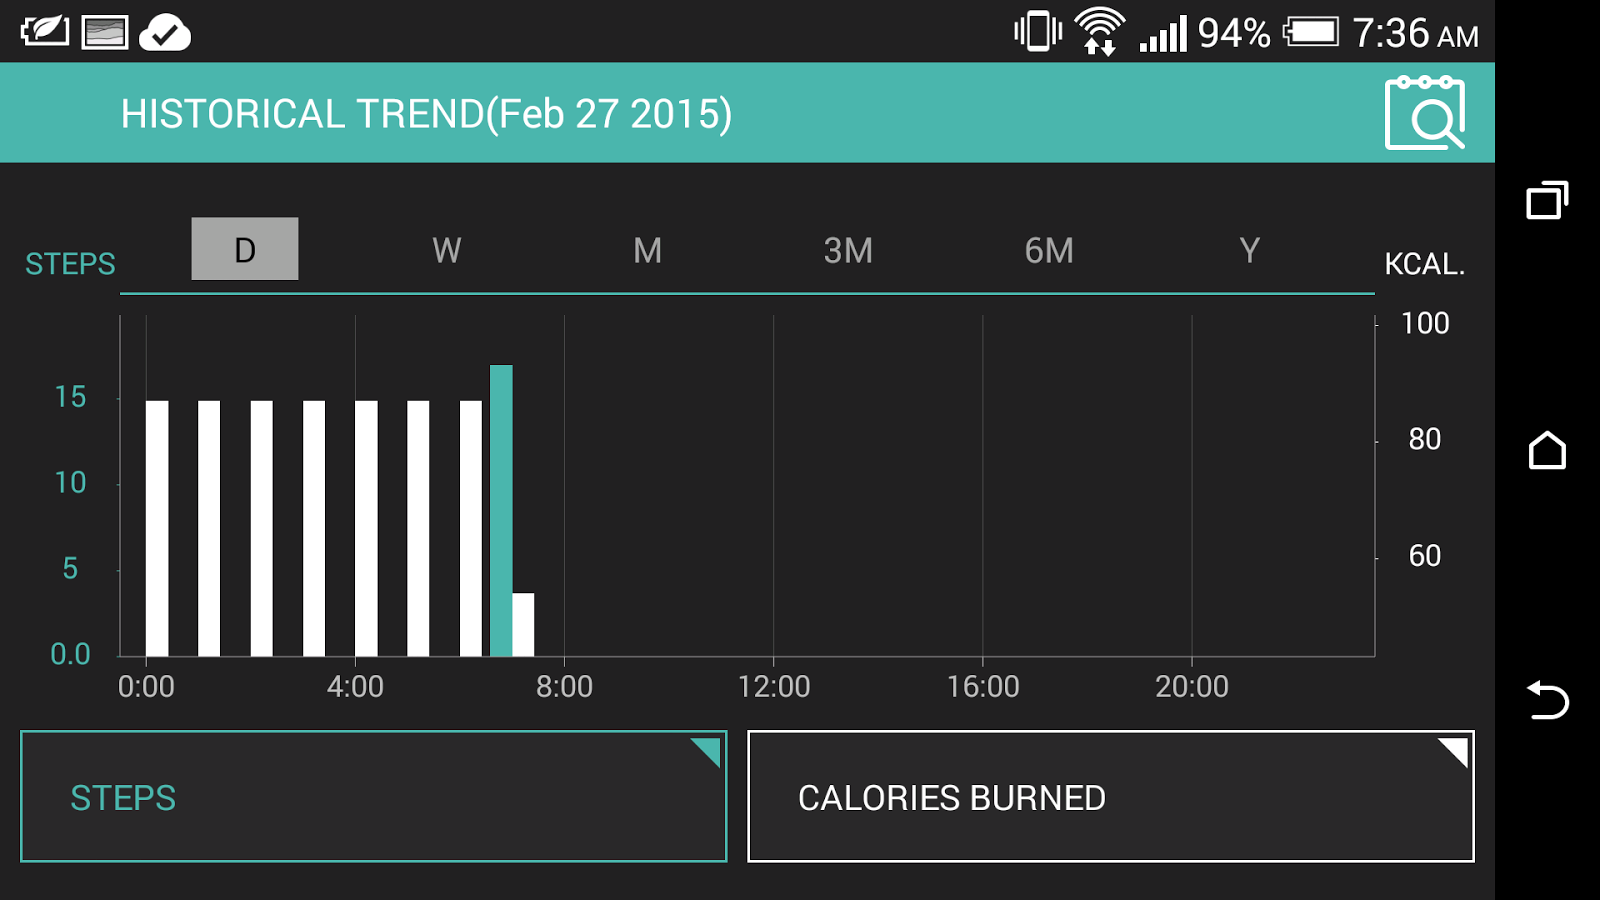 HTC Fun Fit fitness monitoring app released for Android